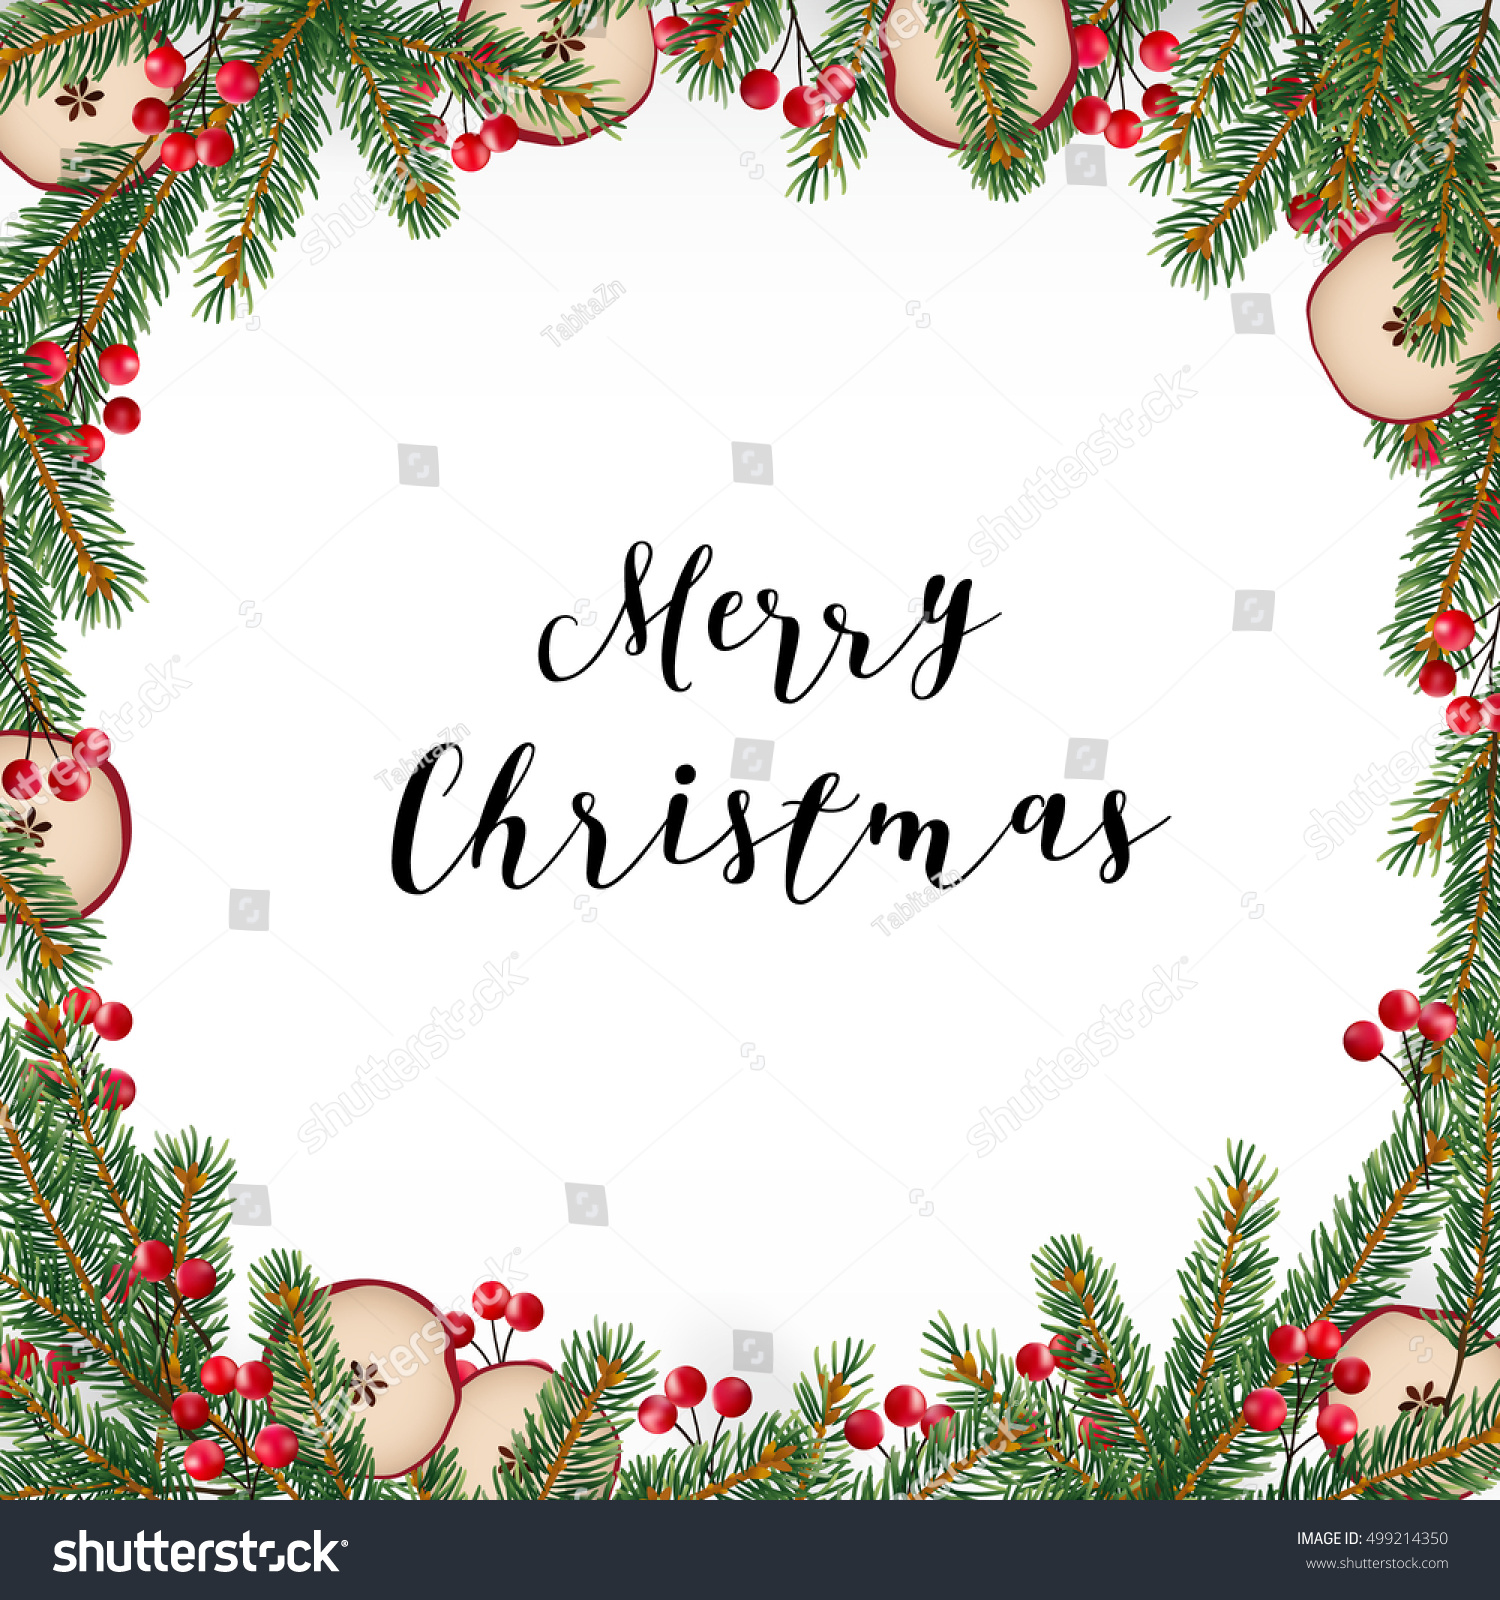 Decorative Traditional Merry Christmas Frame Wreath Stock Vector ...